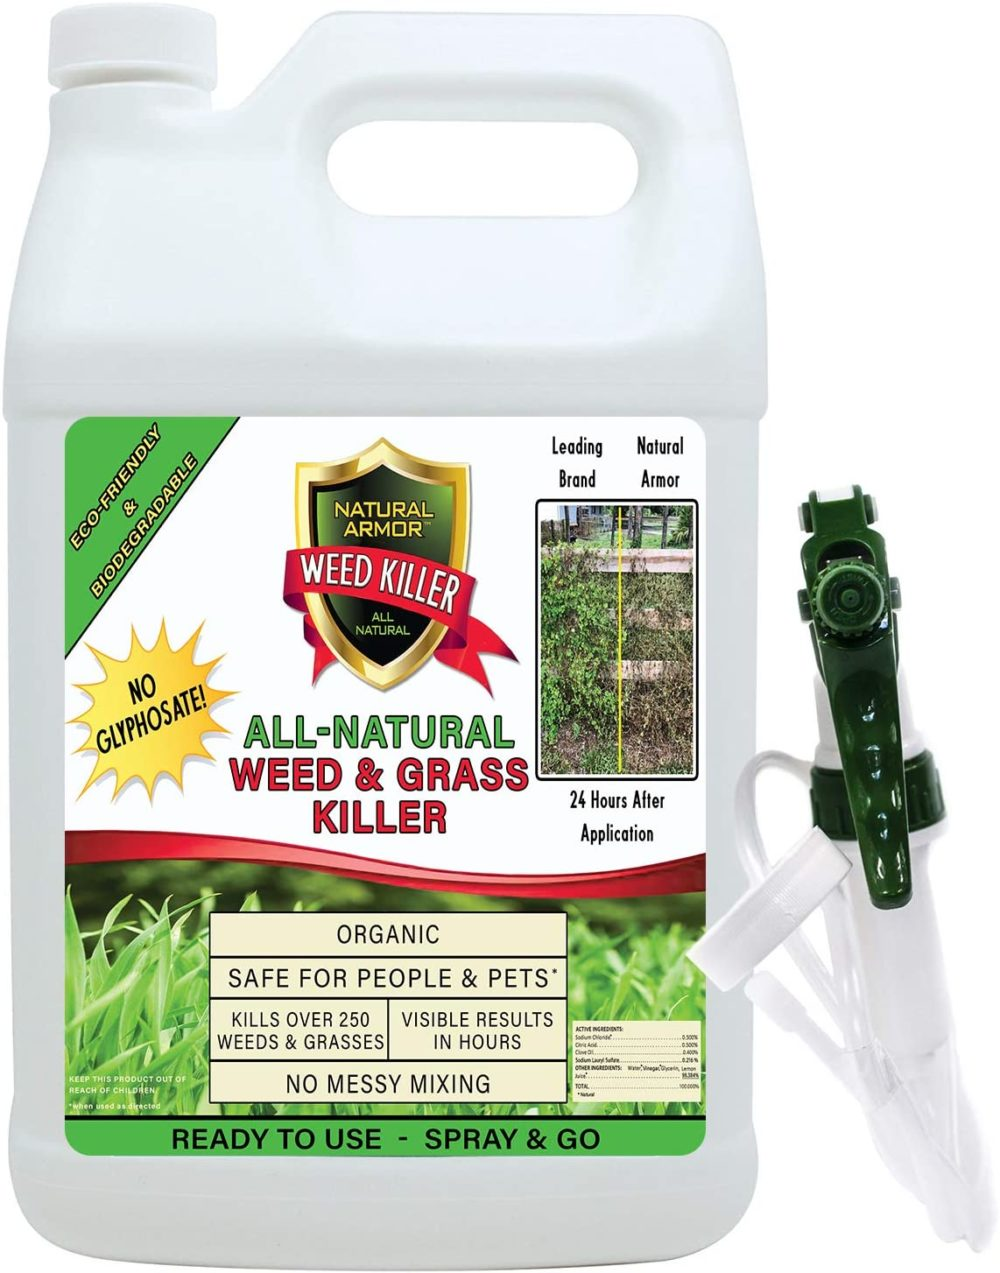 Natural Armor – All-Natural Weed Killer